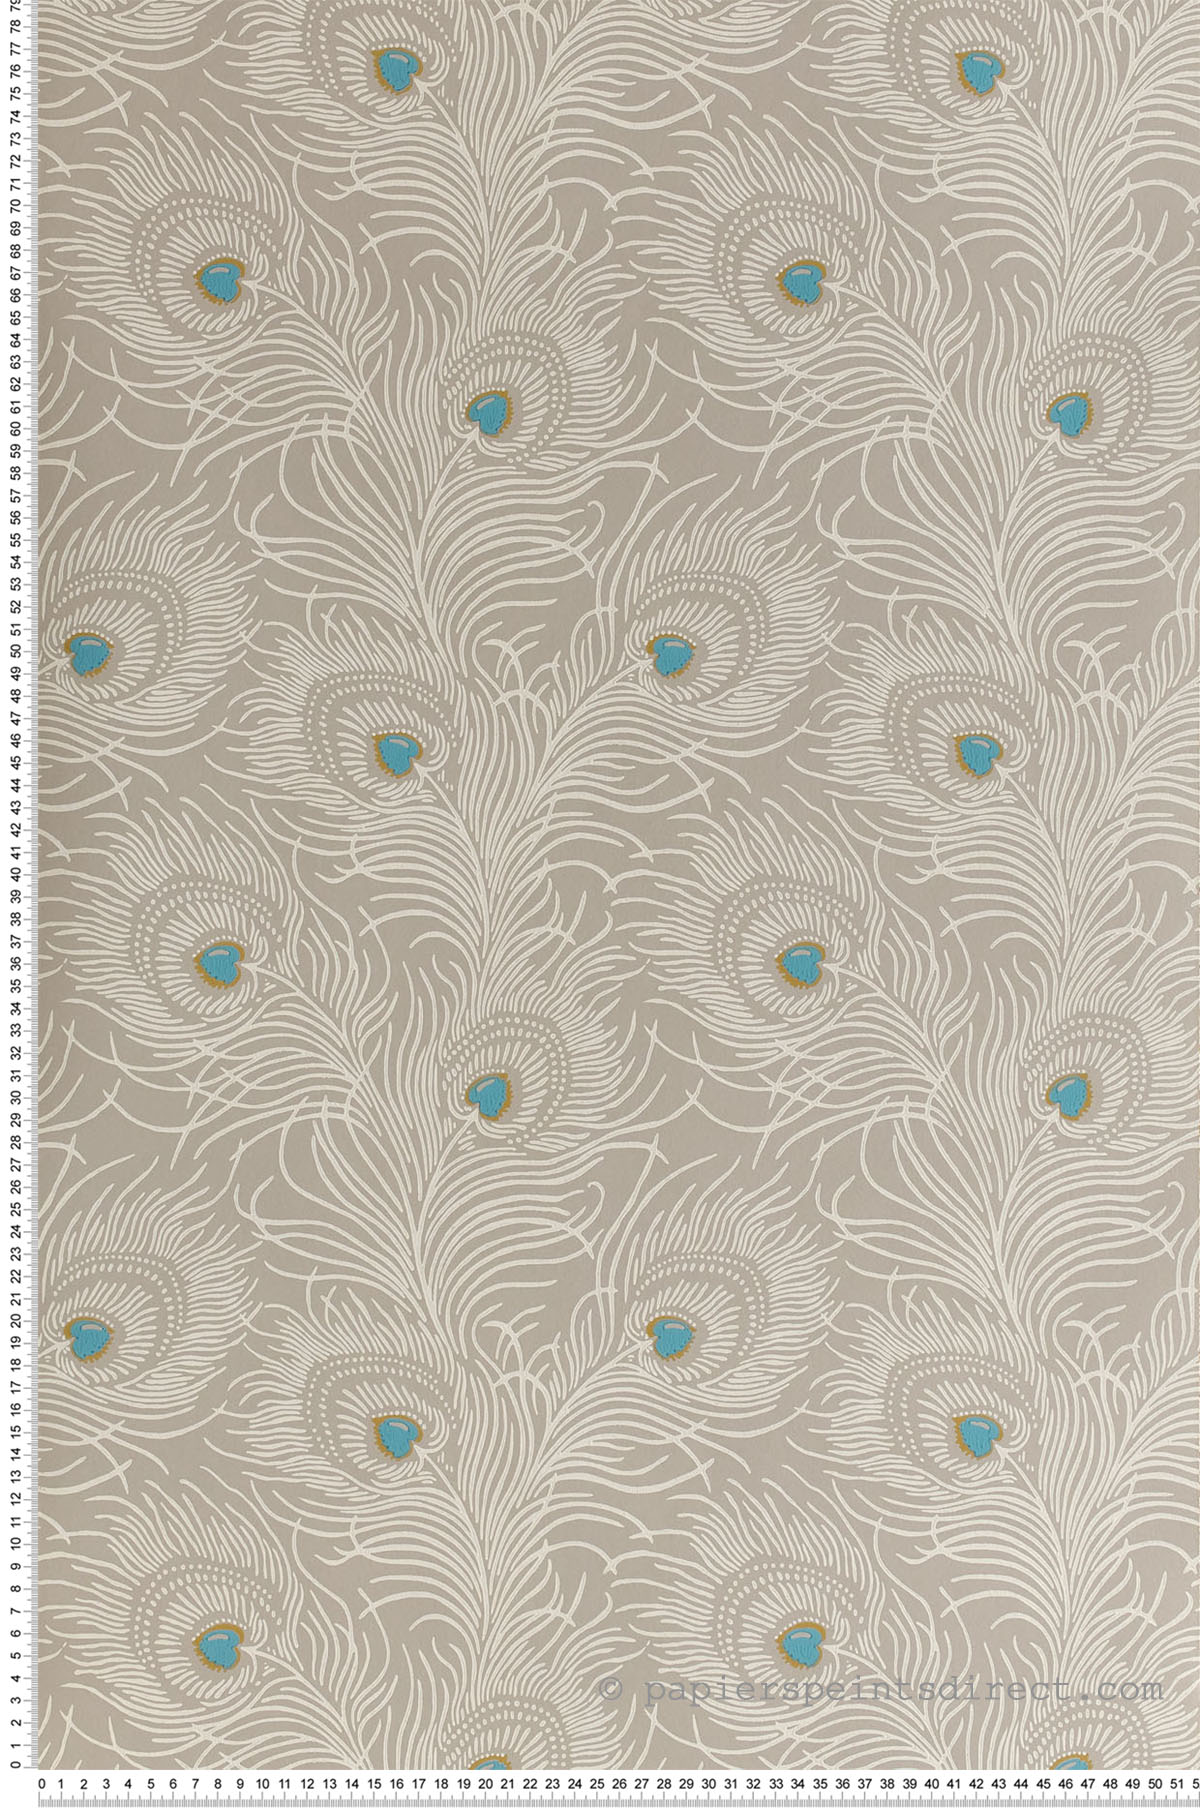 Papier peint Carlton House Terrace Pompon - Collection London Wallpapers V de Little Greene